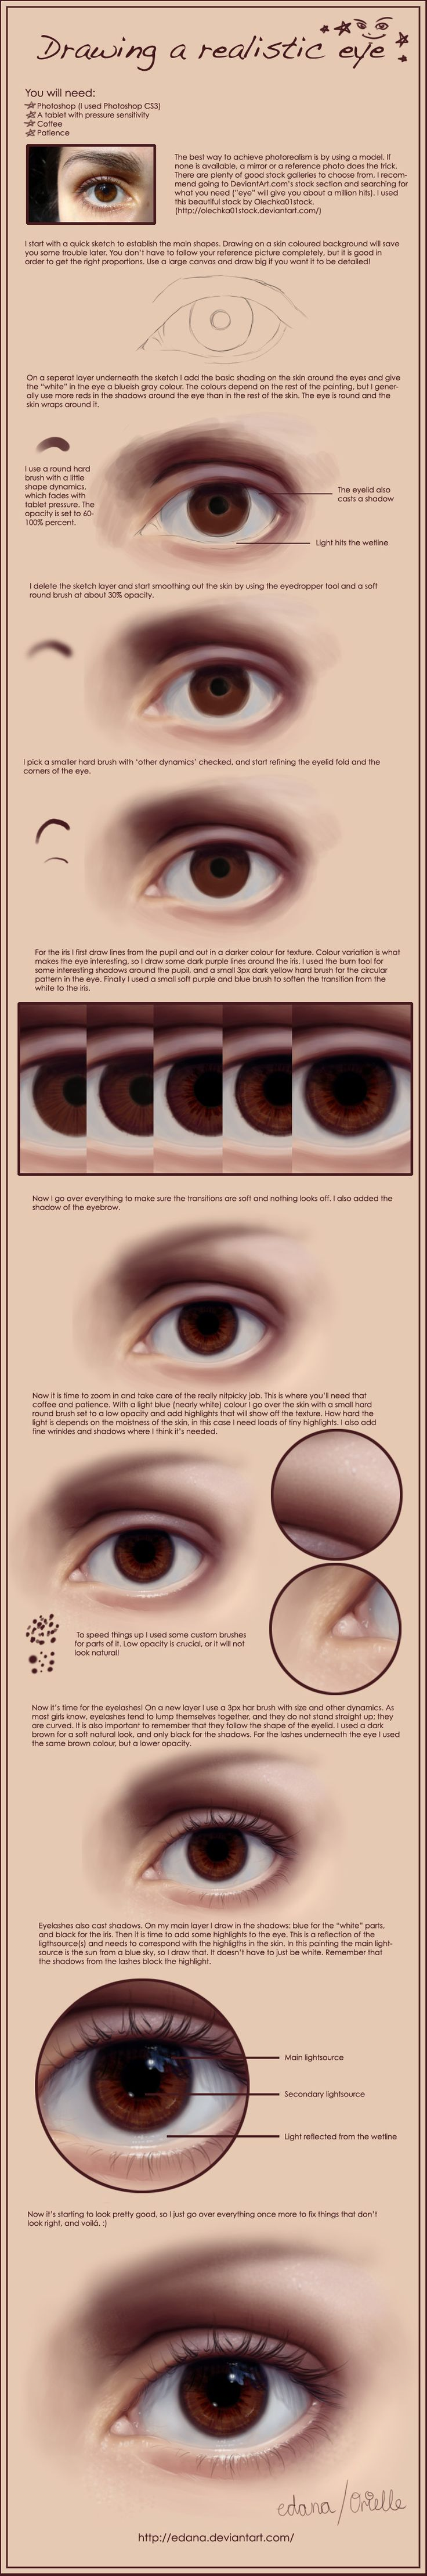 Drawing a realistic eye by =Edana join us http://pinterest.com/koztar/cg-anatomy-tutorials-for-artists/